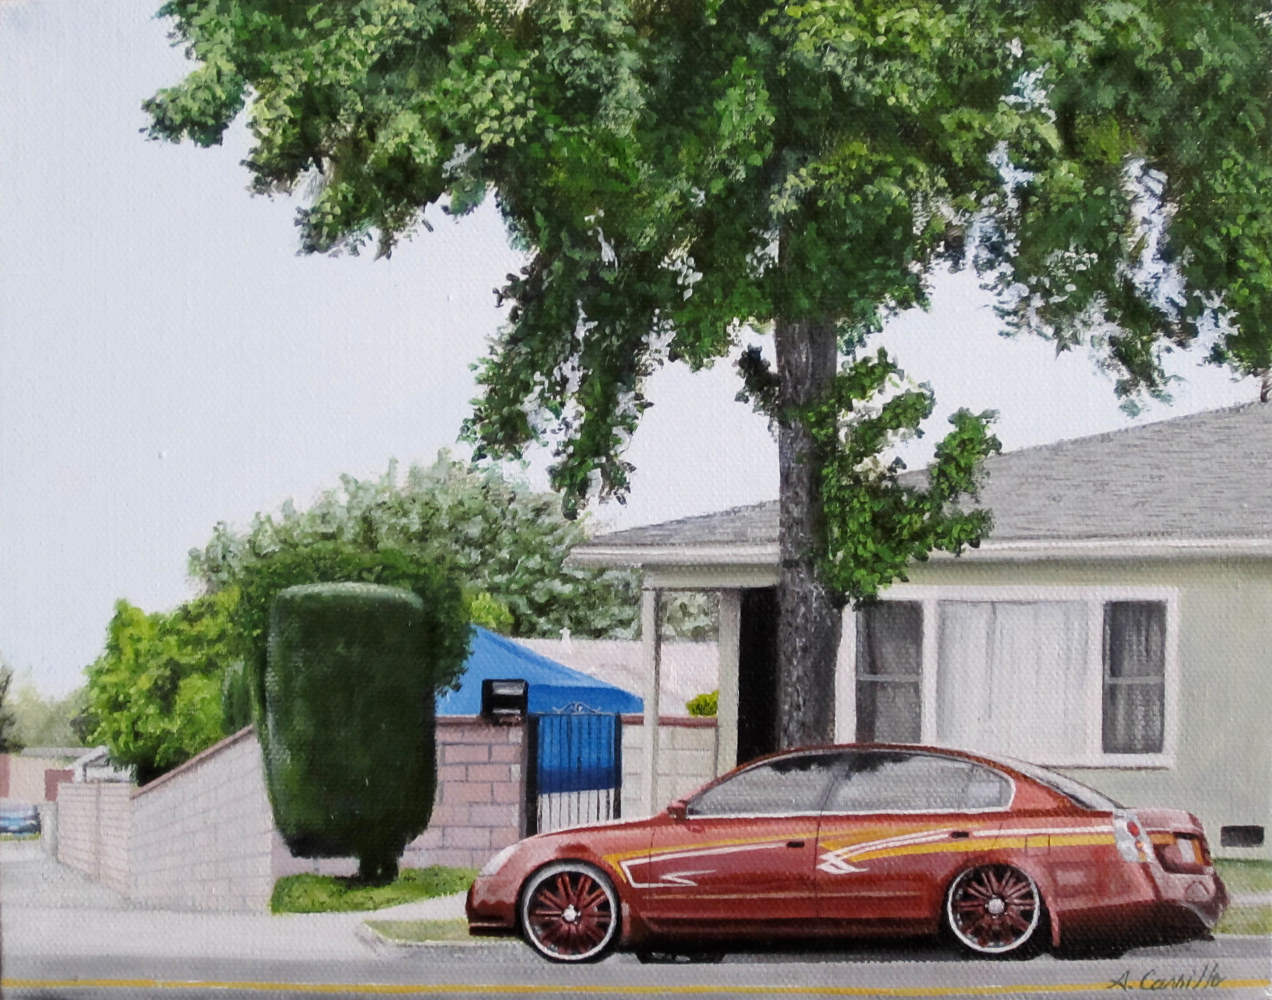 Acrylic painting MY COUSINS HOUSE by Arthur Carrillo